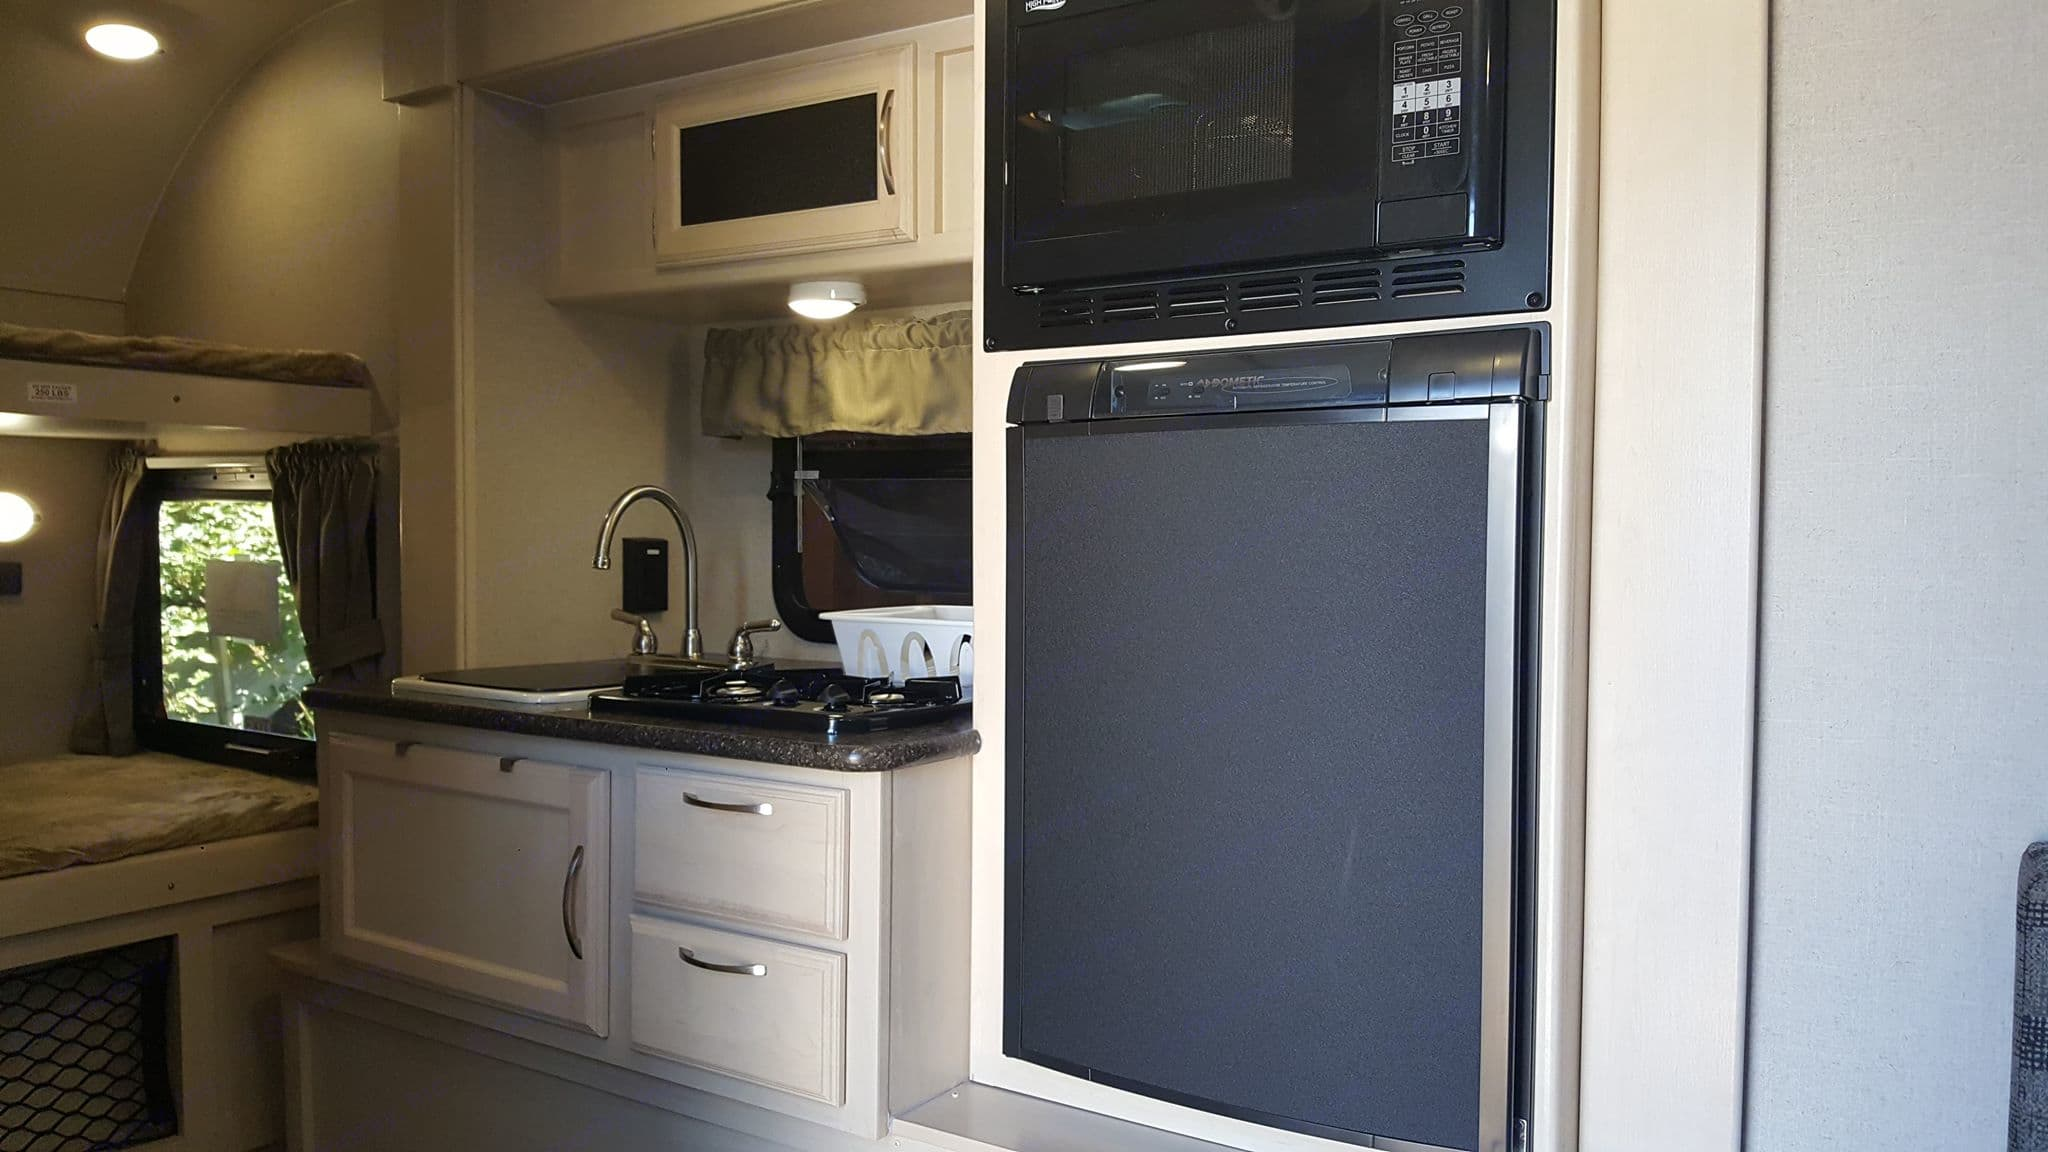 Inside Kitchen. Filled with basic cooking utensils and cleaning supplies. . Winnebago Other 2018